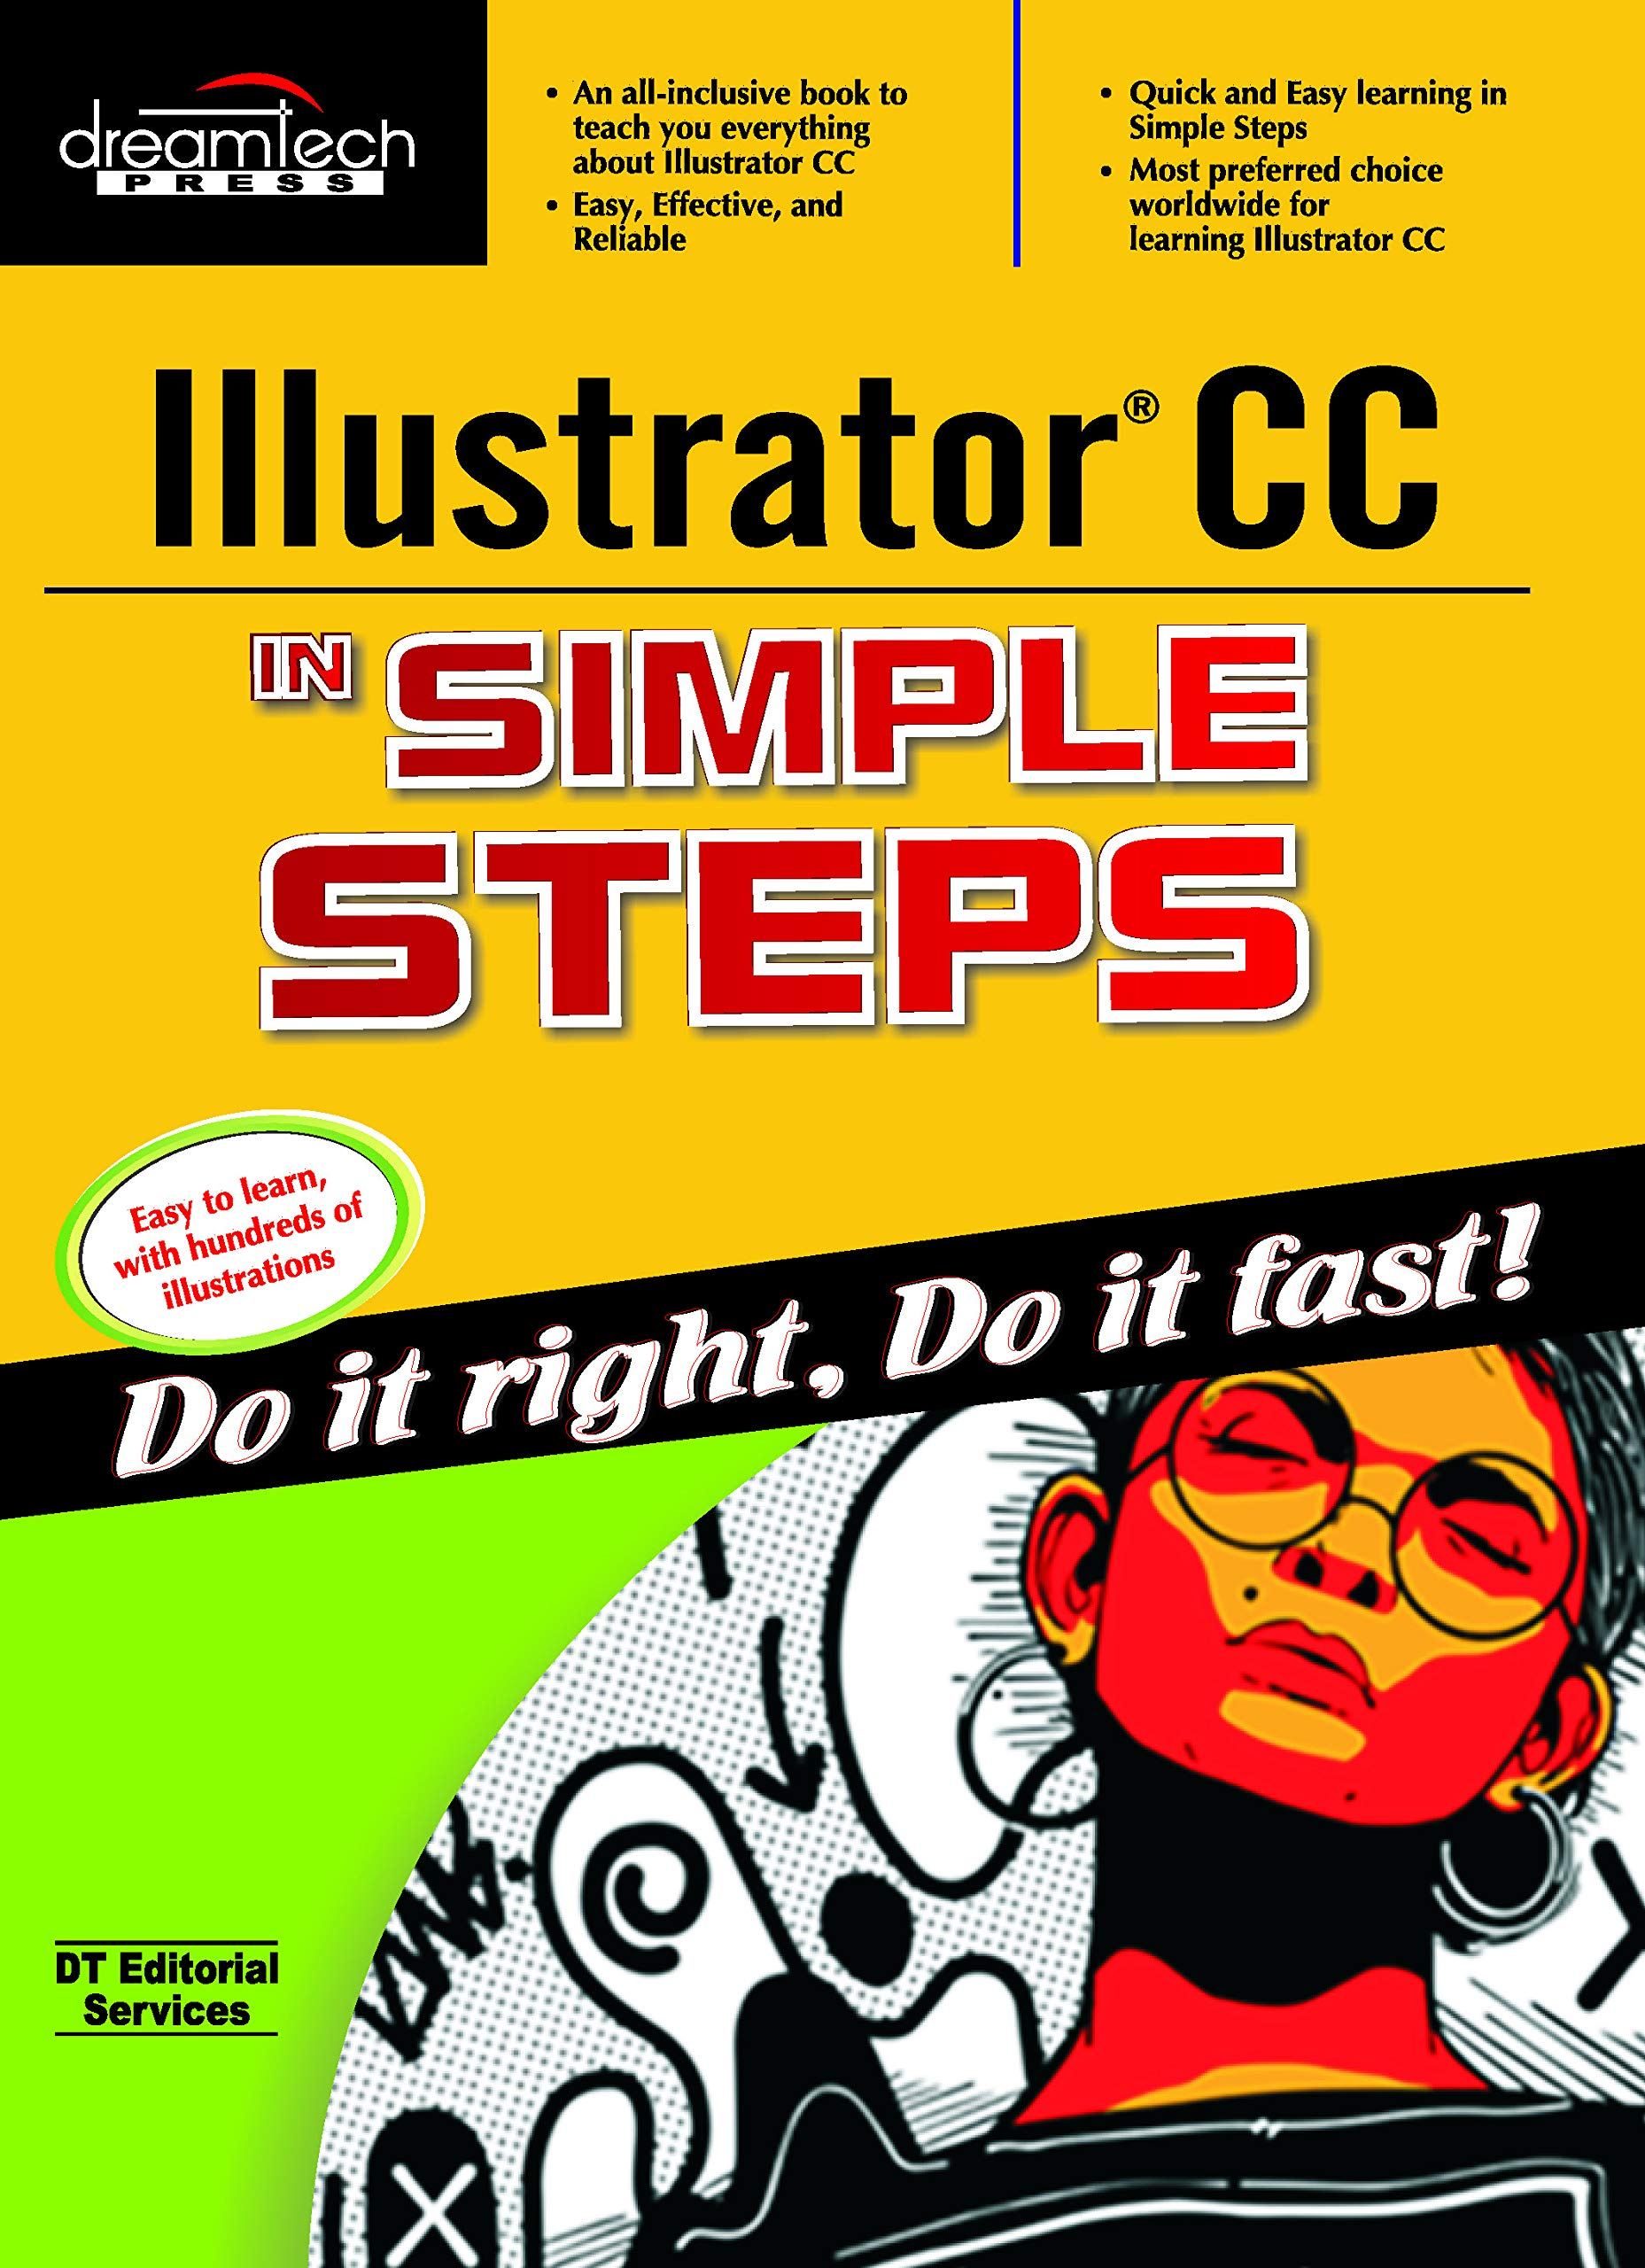 Buy Illustrator CC in Simple Steps Book Online at Low Prices